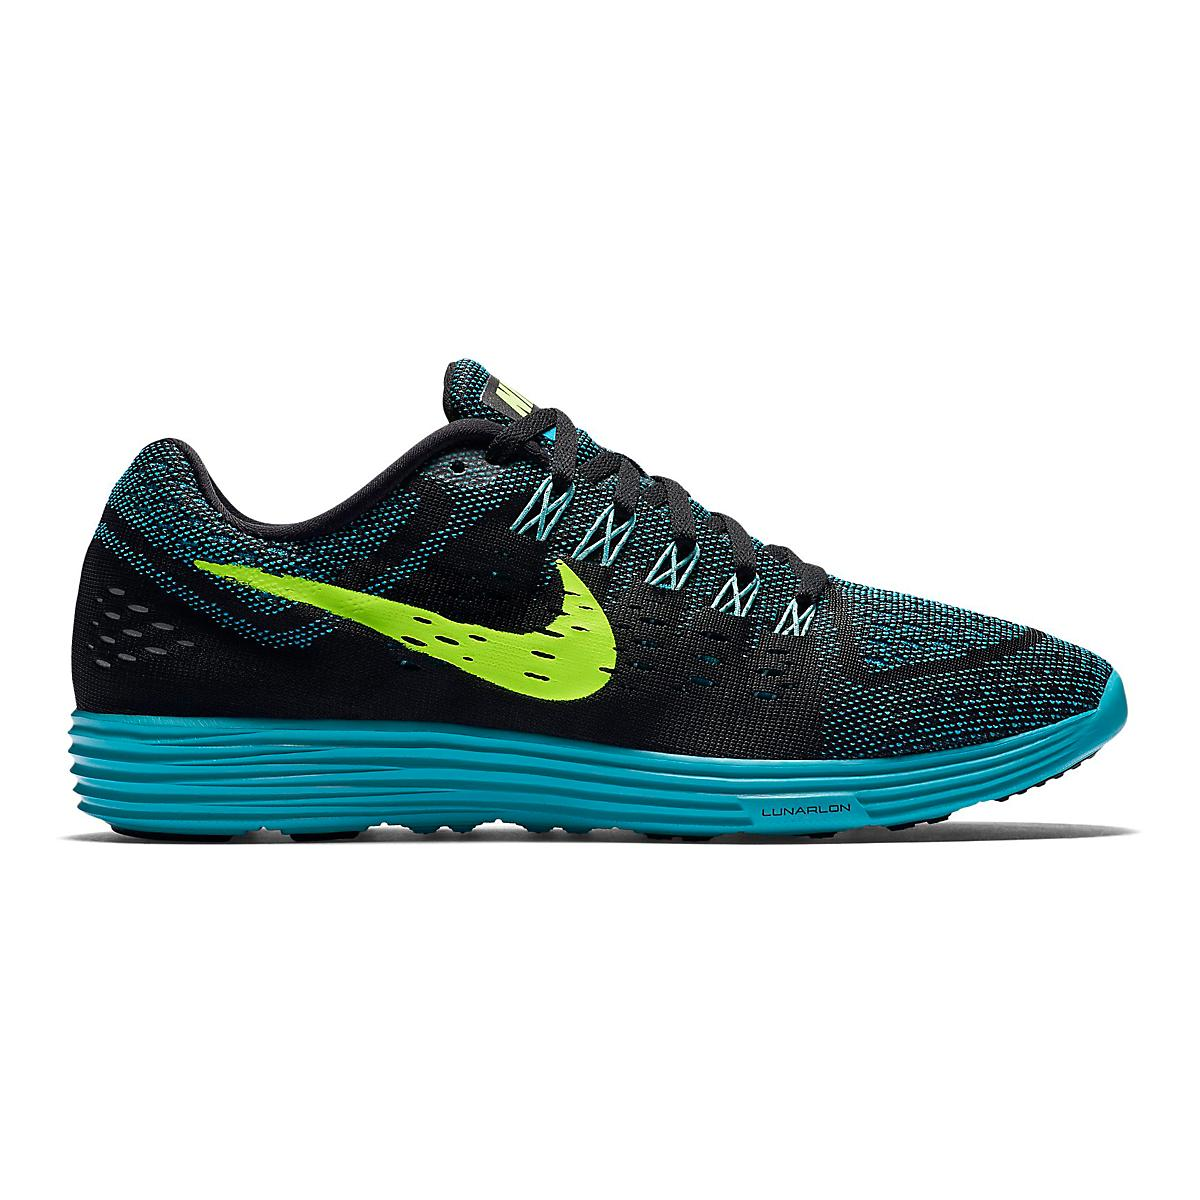 low priced c5726 d6038 Mens Nike LunarTempo Running Shoe at Road Runner Sports